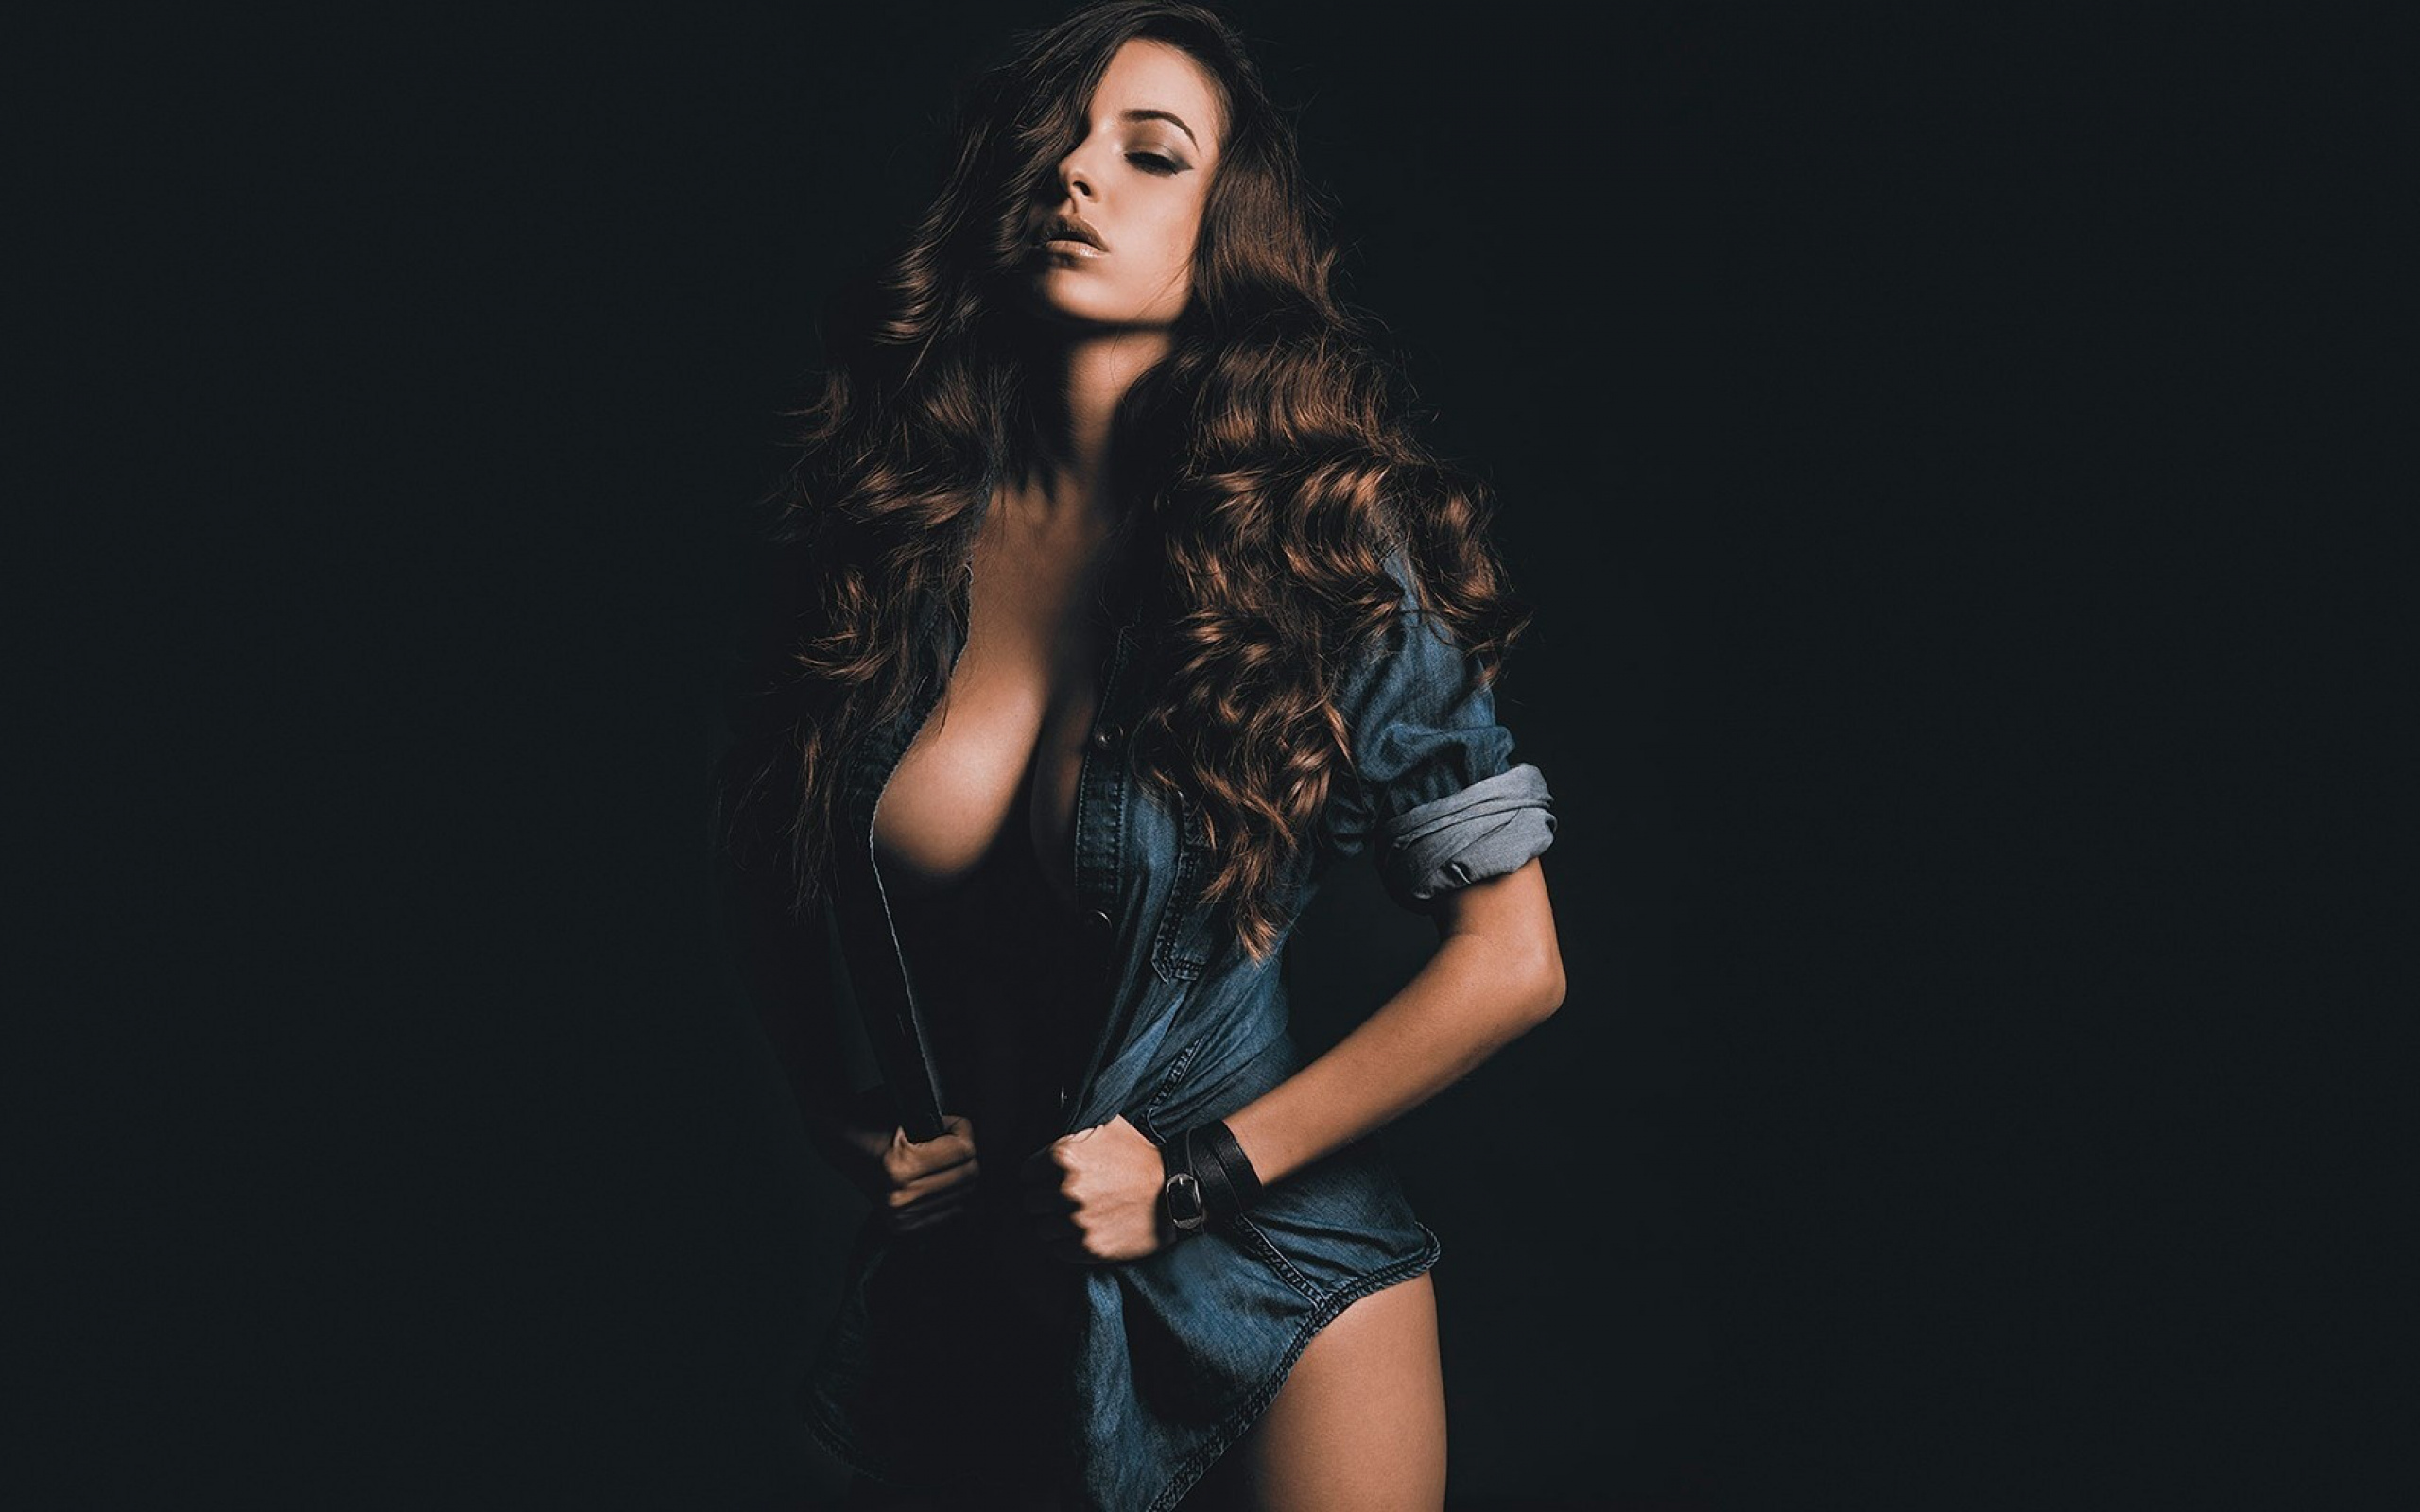 Shelby Chesnes Wallpapers Hd